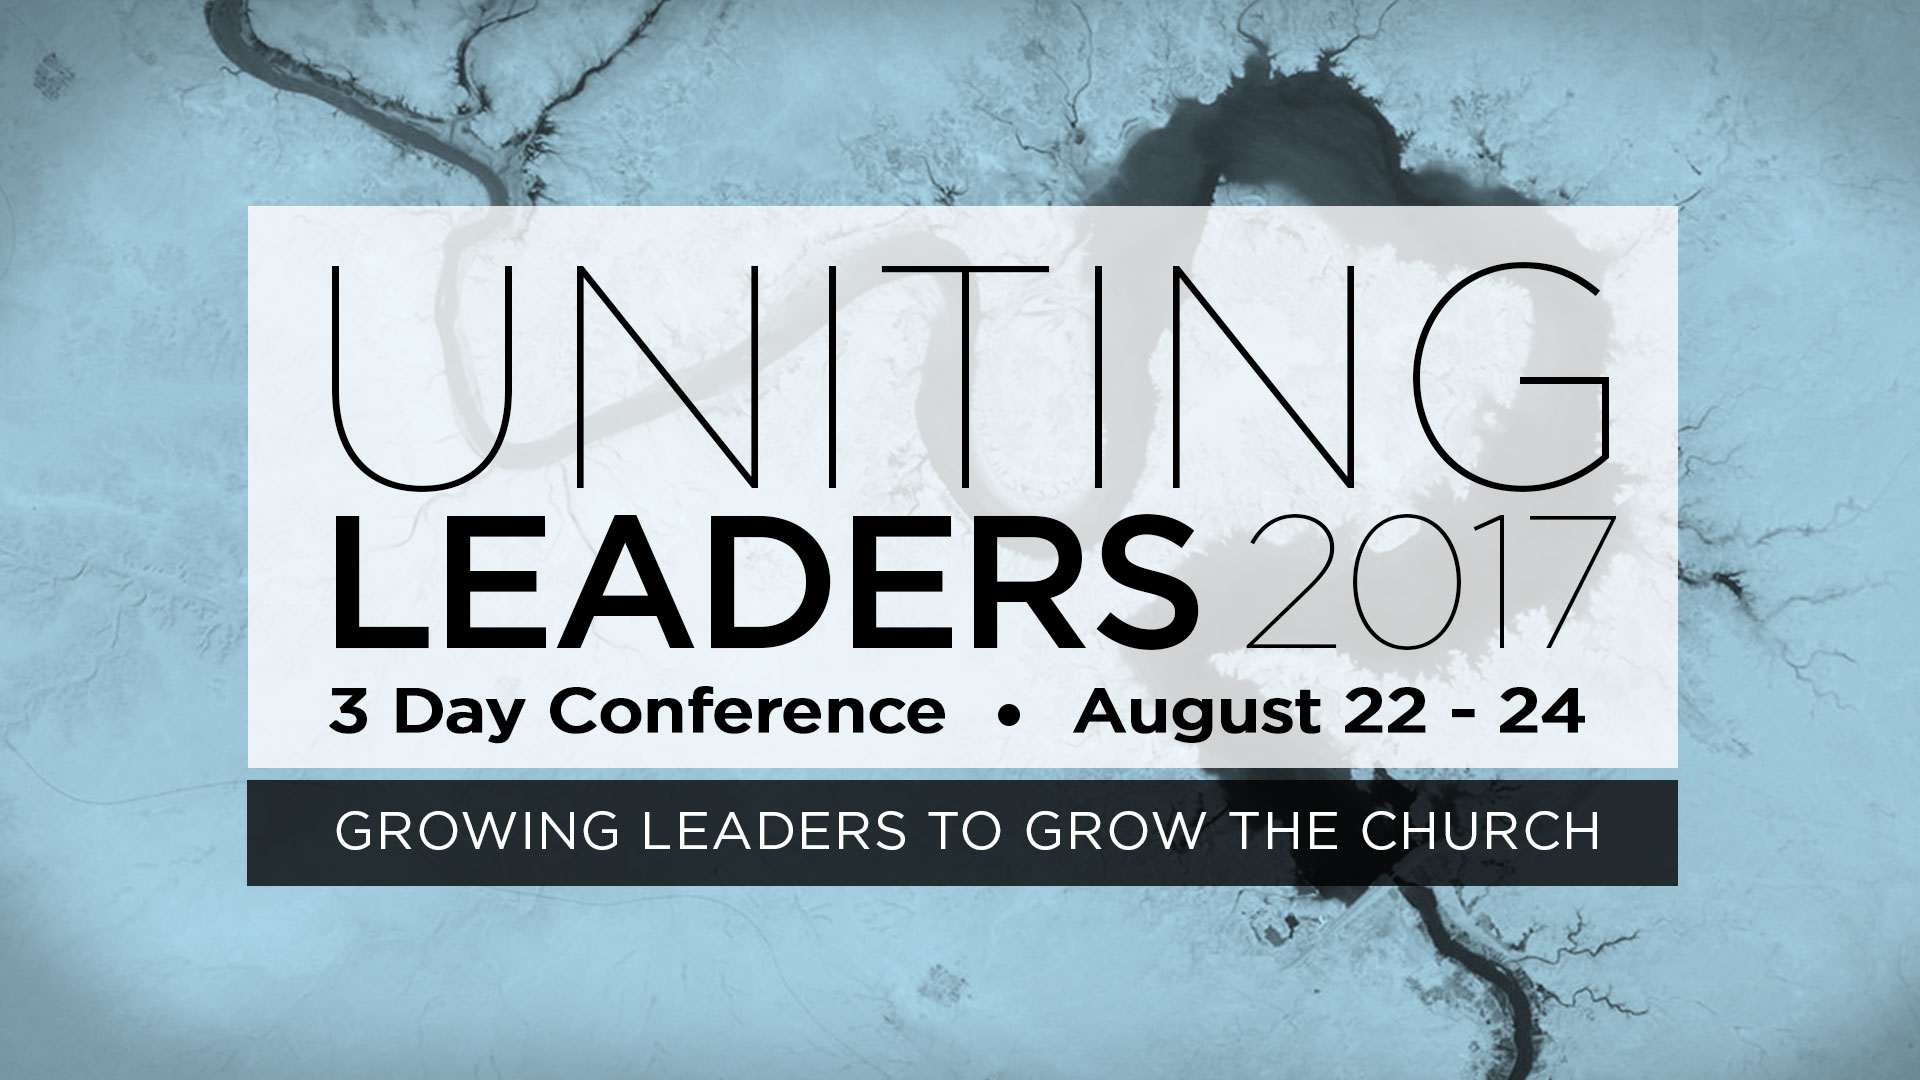 UL17 is a 3 day conference focussed on growing leaders to grow the church. Featuring keynote speakers: Nancy Beach & Mark Conner. Find out more & register here.